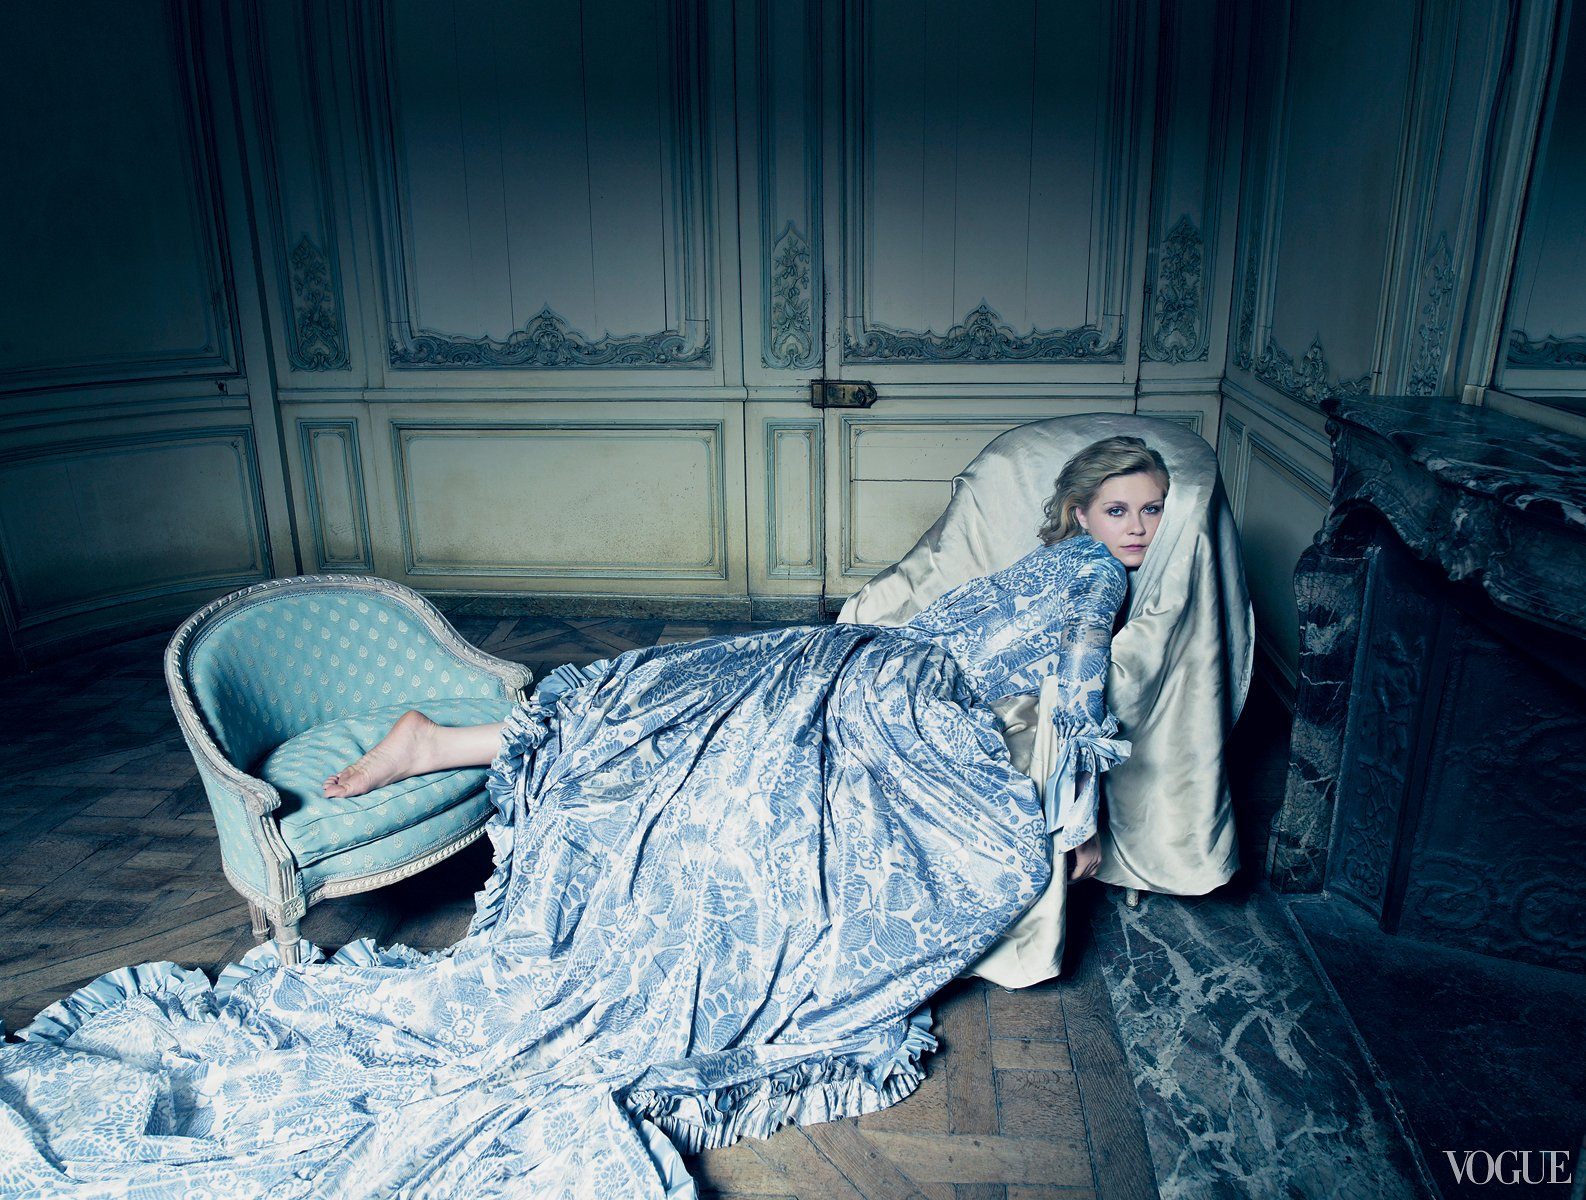 Kirsten Dunst wears Oscar de la Renta custom-designed for Vogue's Marie Antoinette editorial, 2006